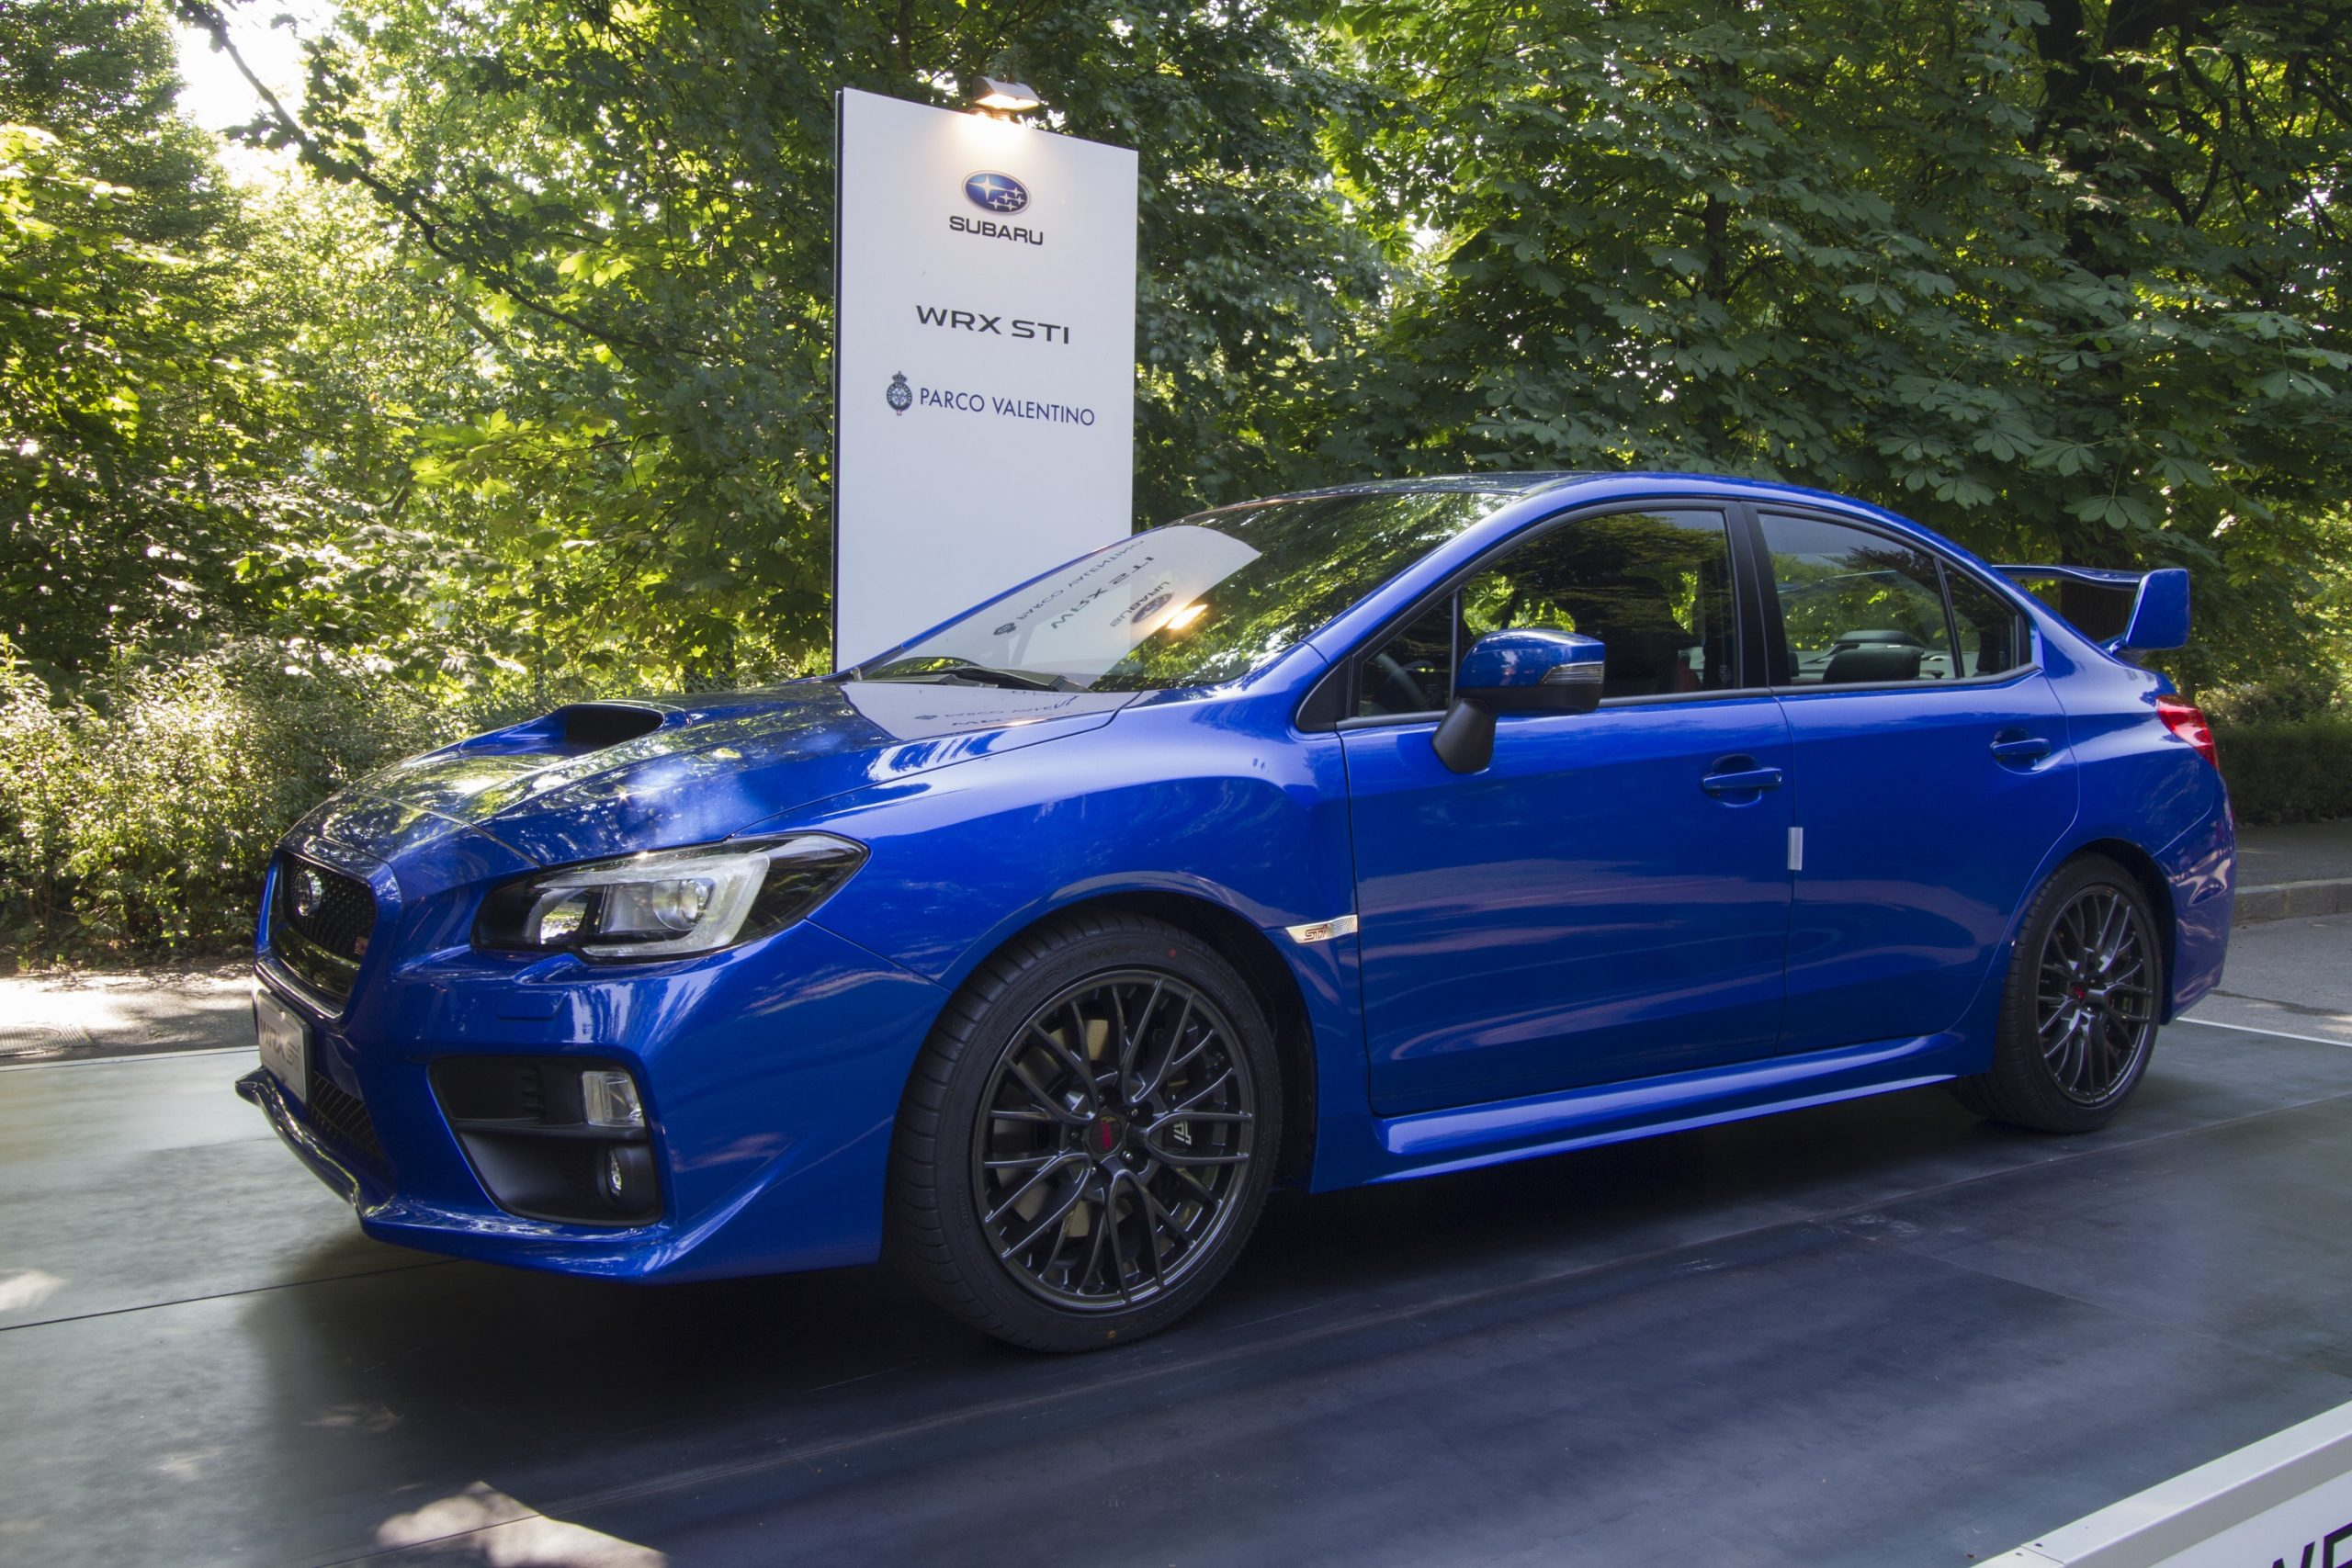 A blue 2021 Subaru WRX STI at an auto show shot under the trees from the front 3/4